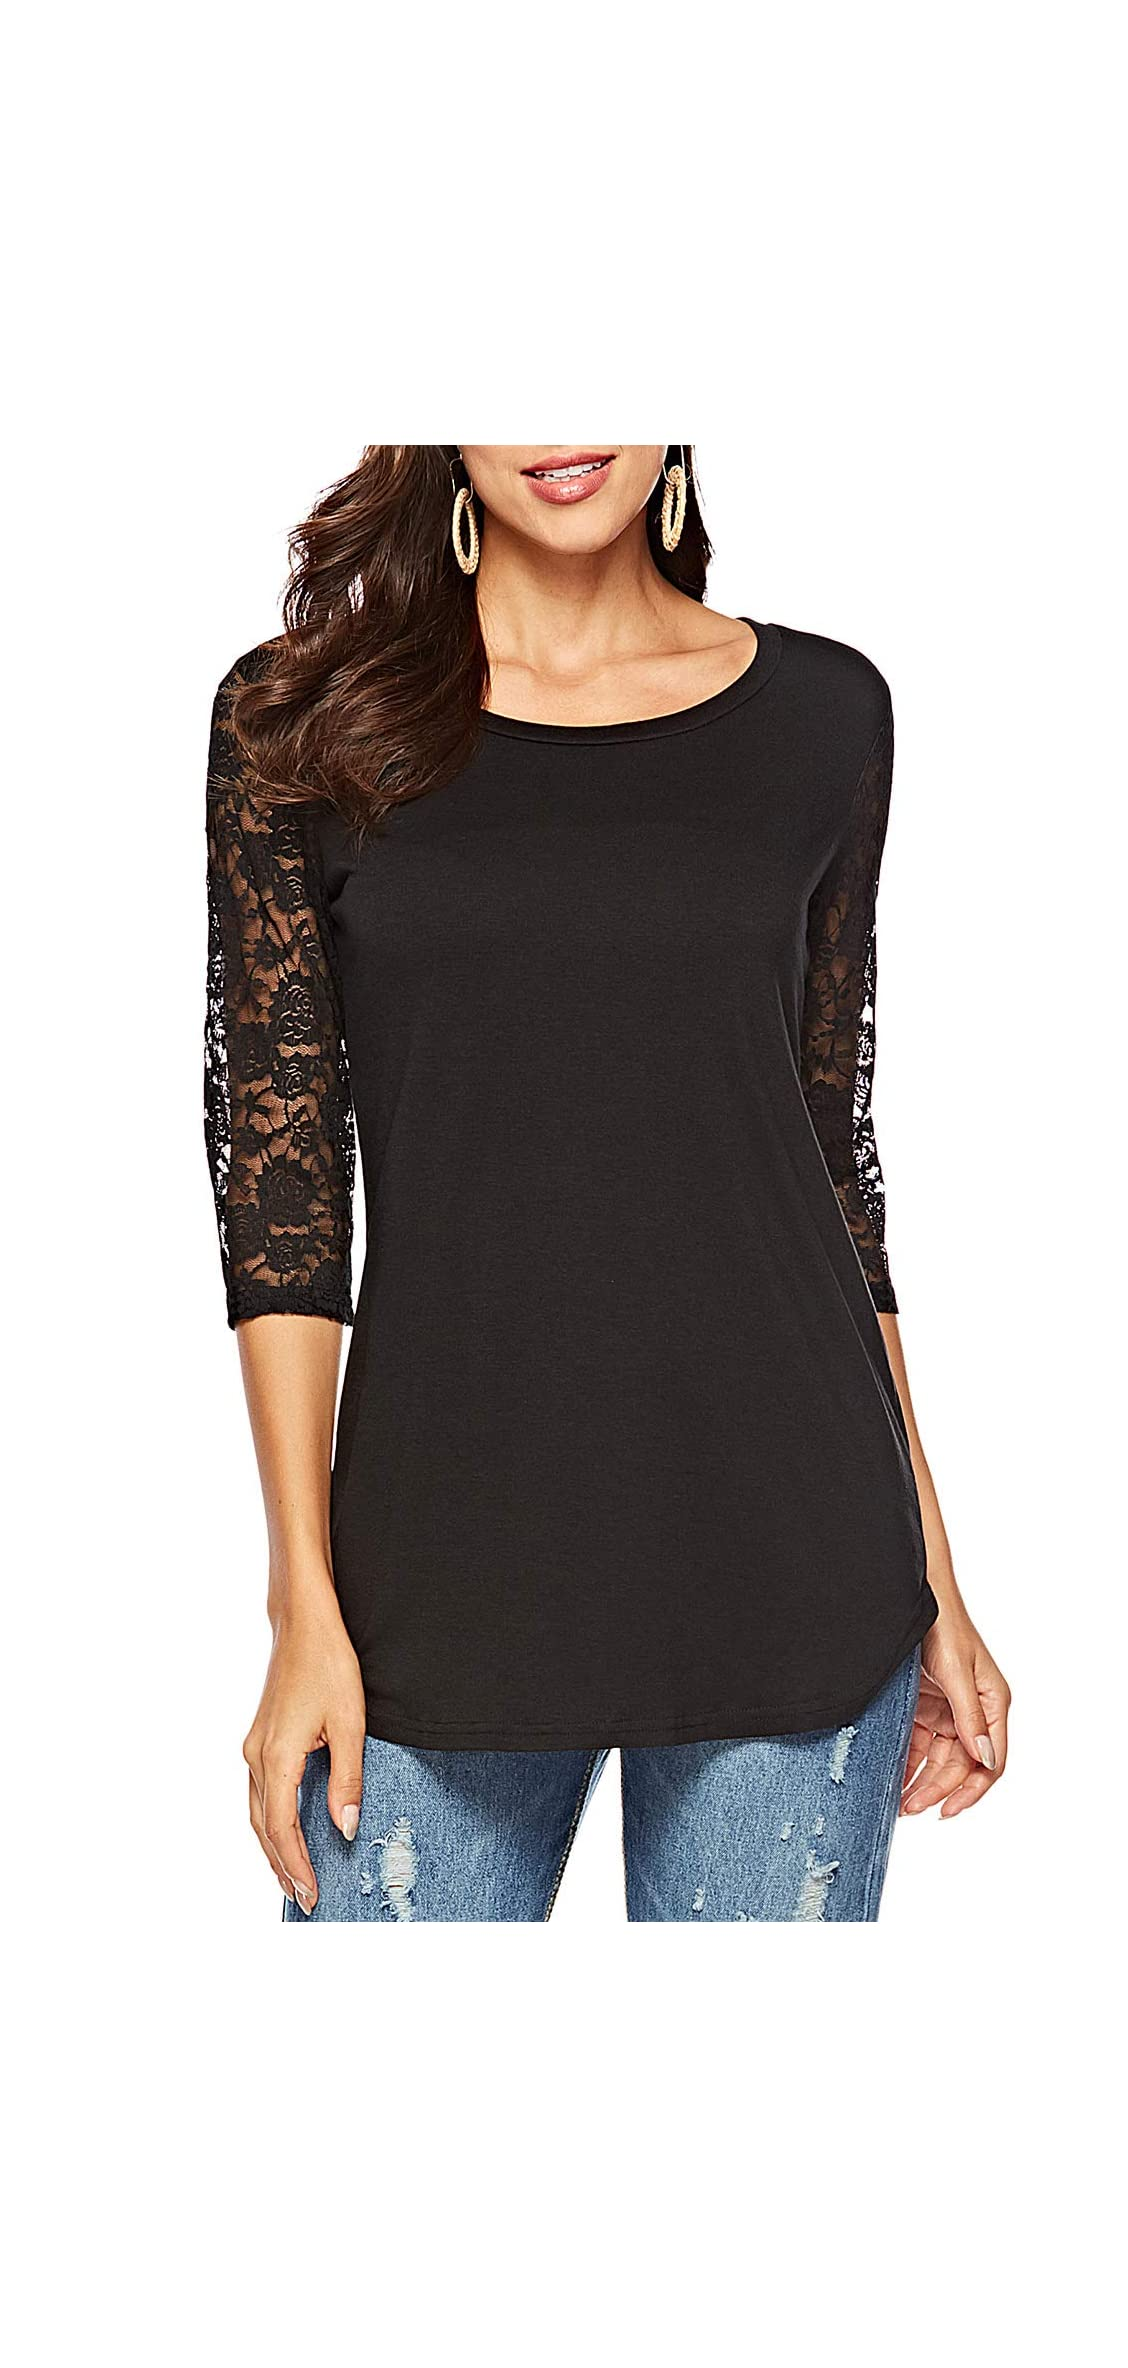 Women's / Lace Sleeve Round Neck T-shirt Casual Blouses